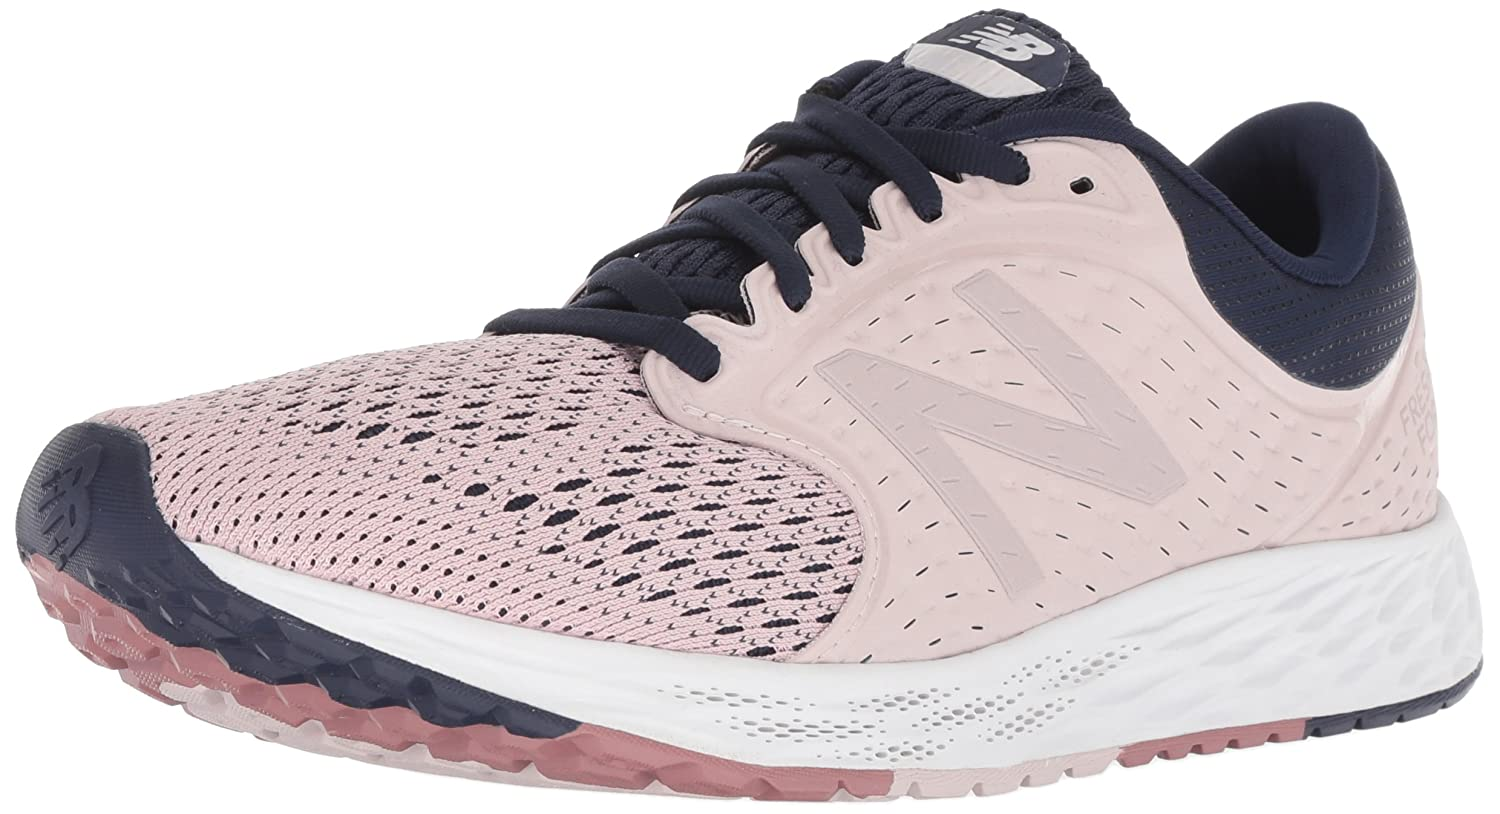 New Balance Women's Zante V4 Fresh Foam Running Shoe B075R7N598 10.5 D US|Light Pink